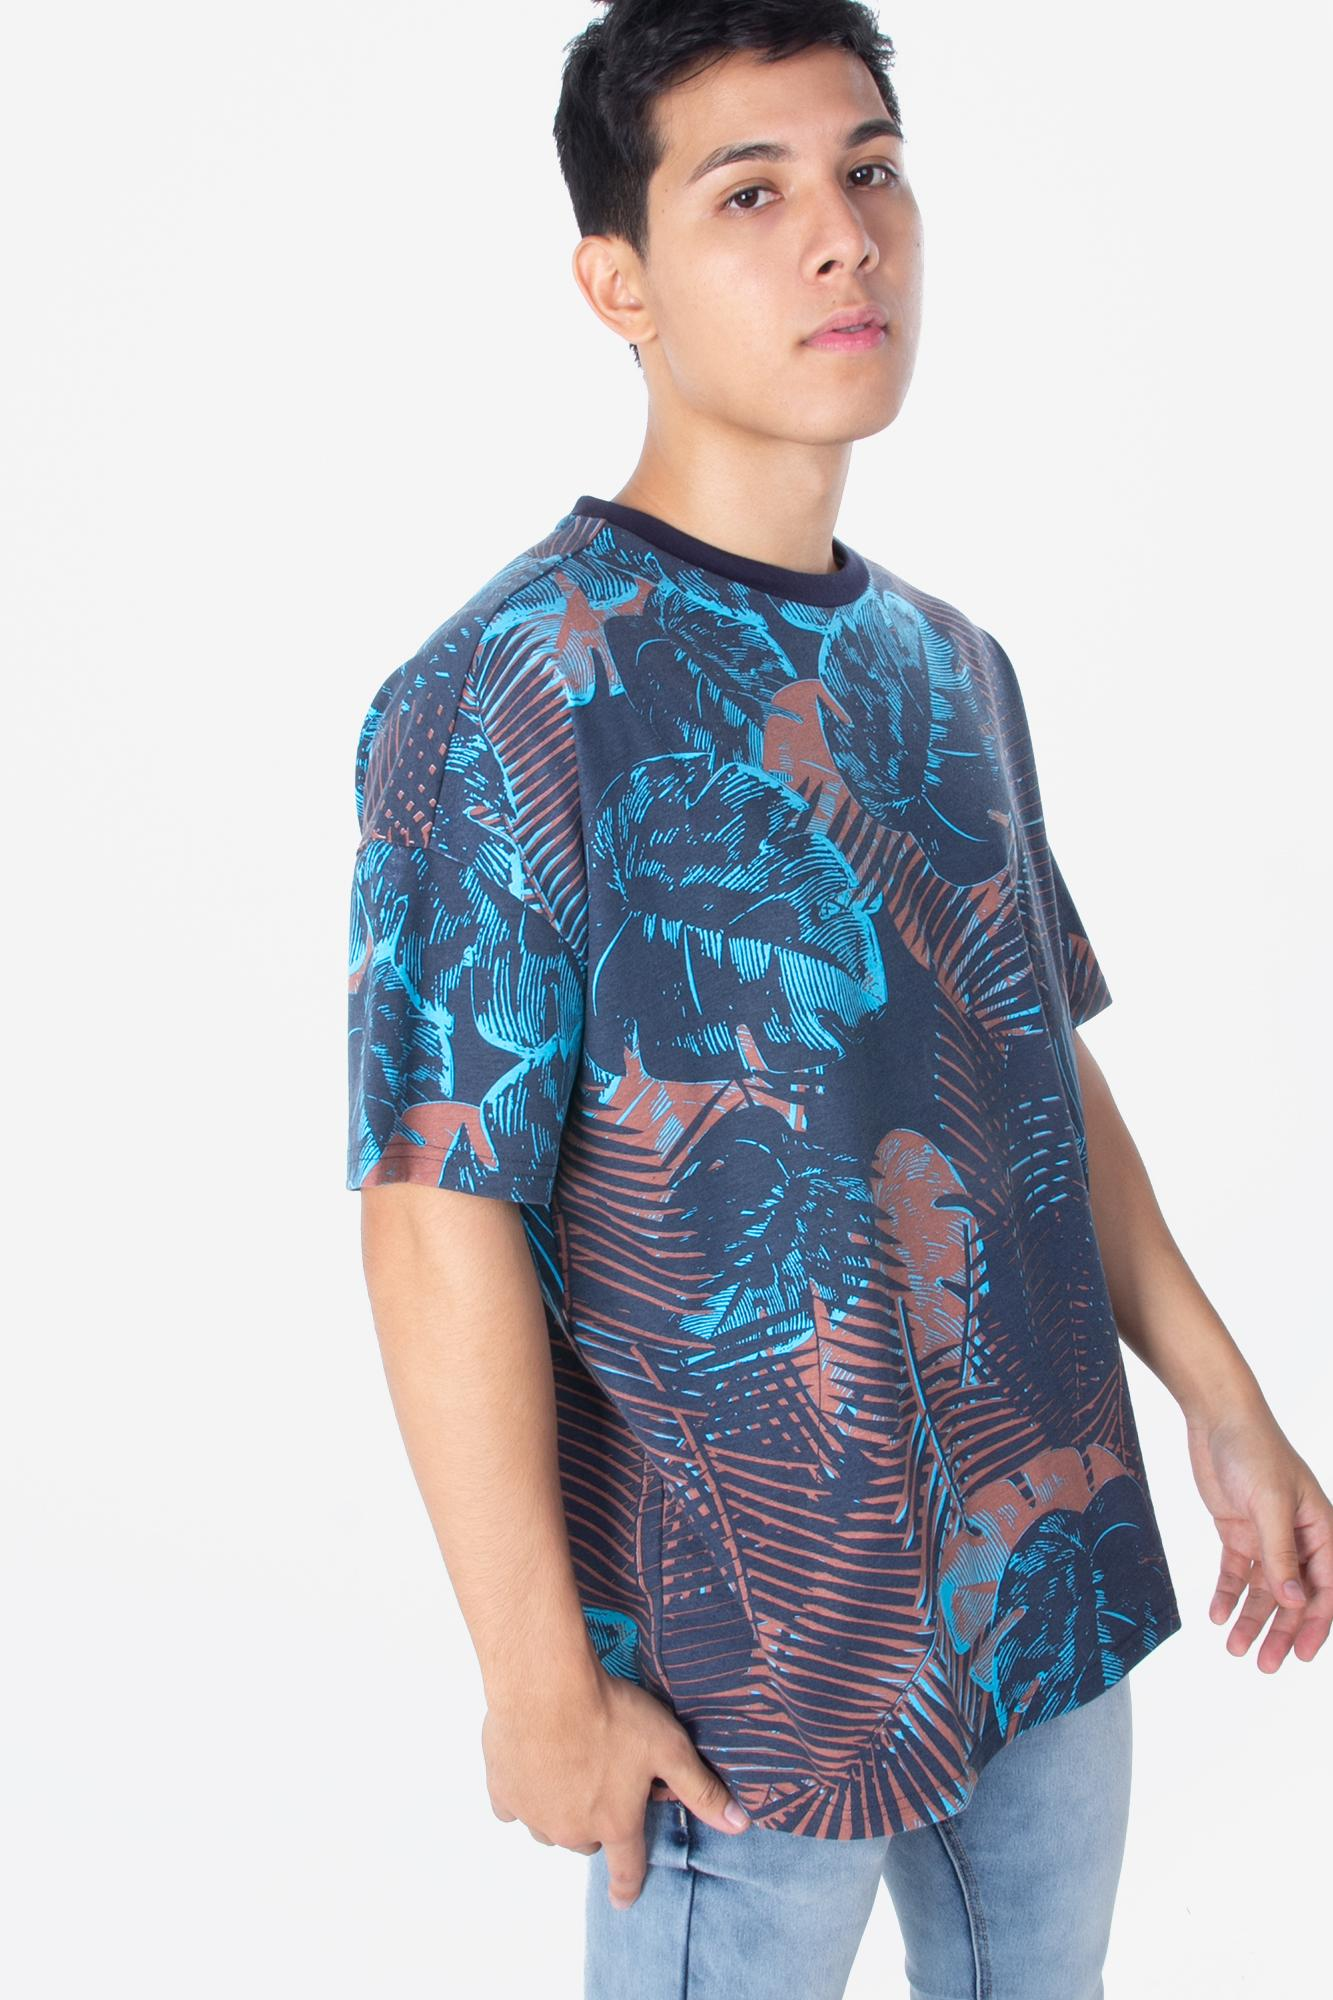 Penshoppe Oversized Tee With All-Over Print (Midnight Blue) dab300d2716